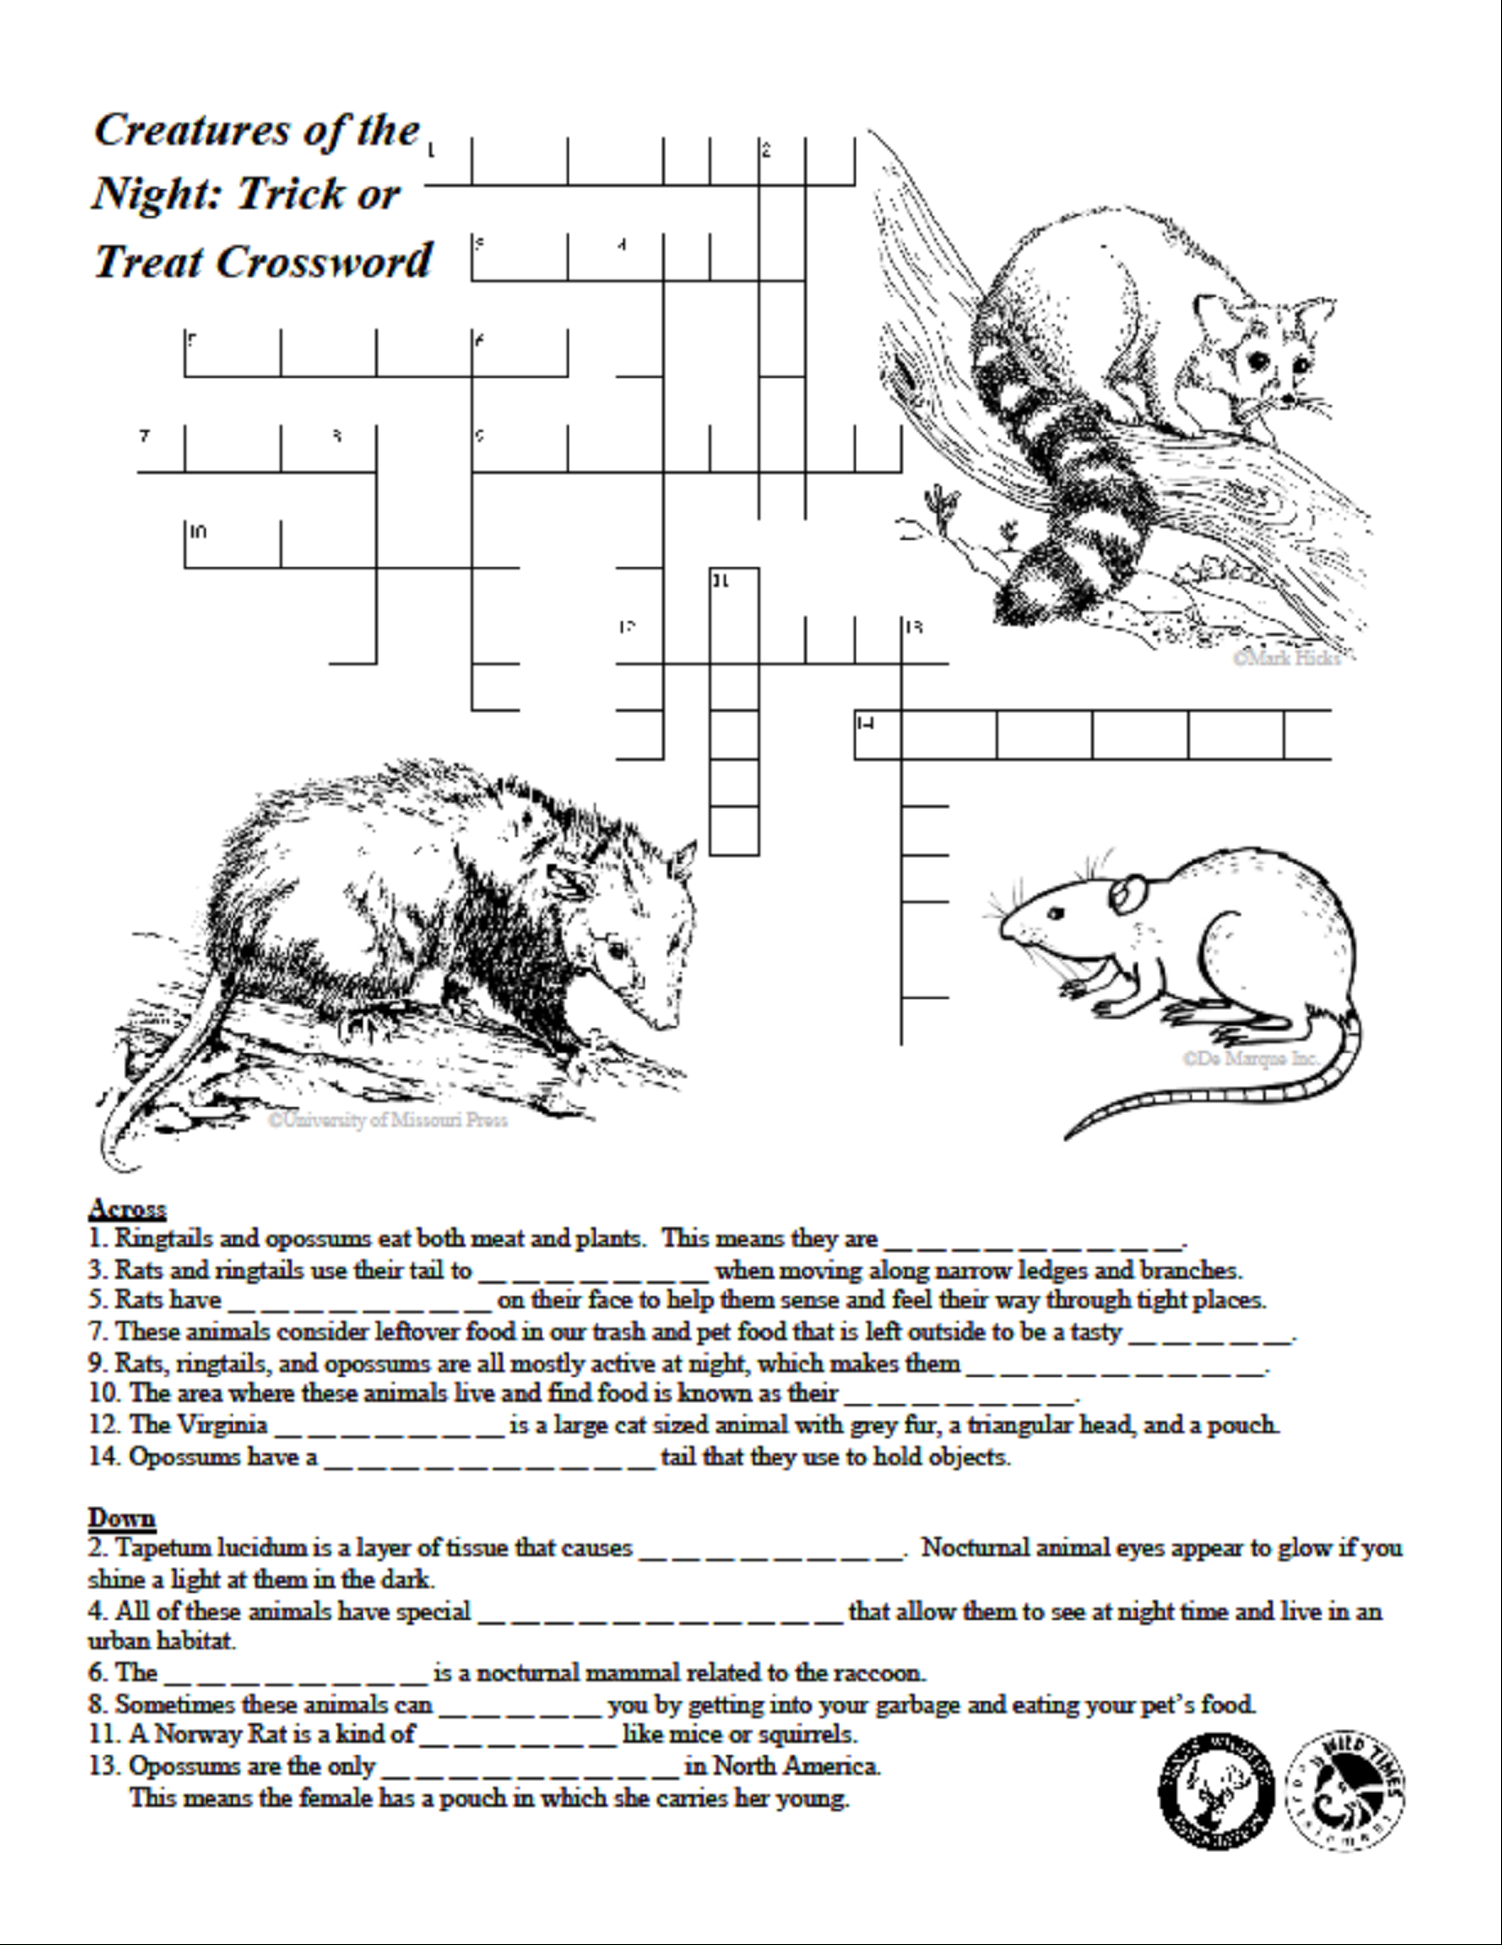 Creatures Of The Night Crossword Puzzle - Texas Wildlife Association - Wildlife Crossword Puzzle Printable